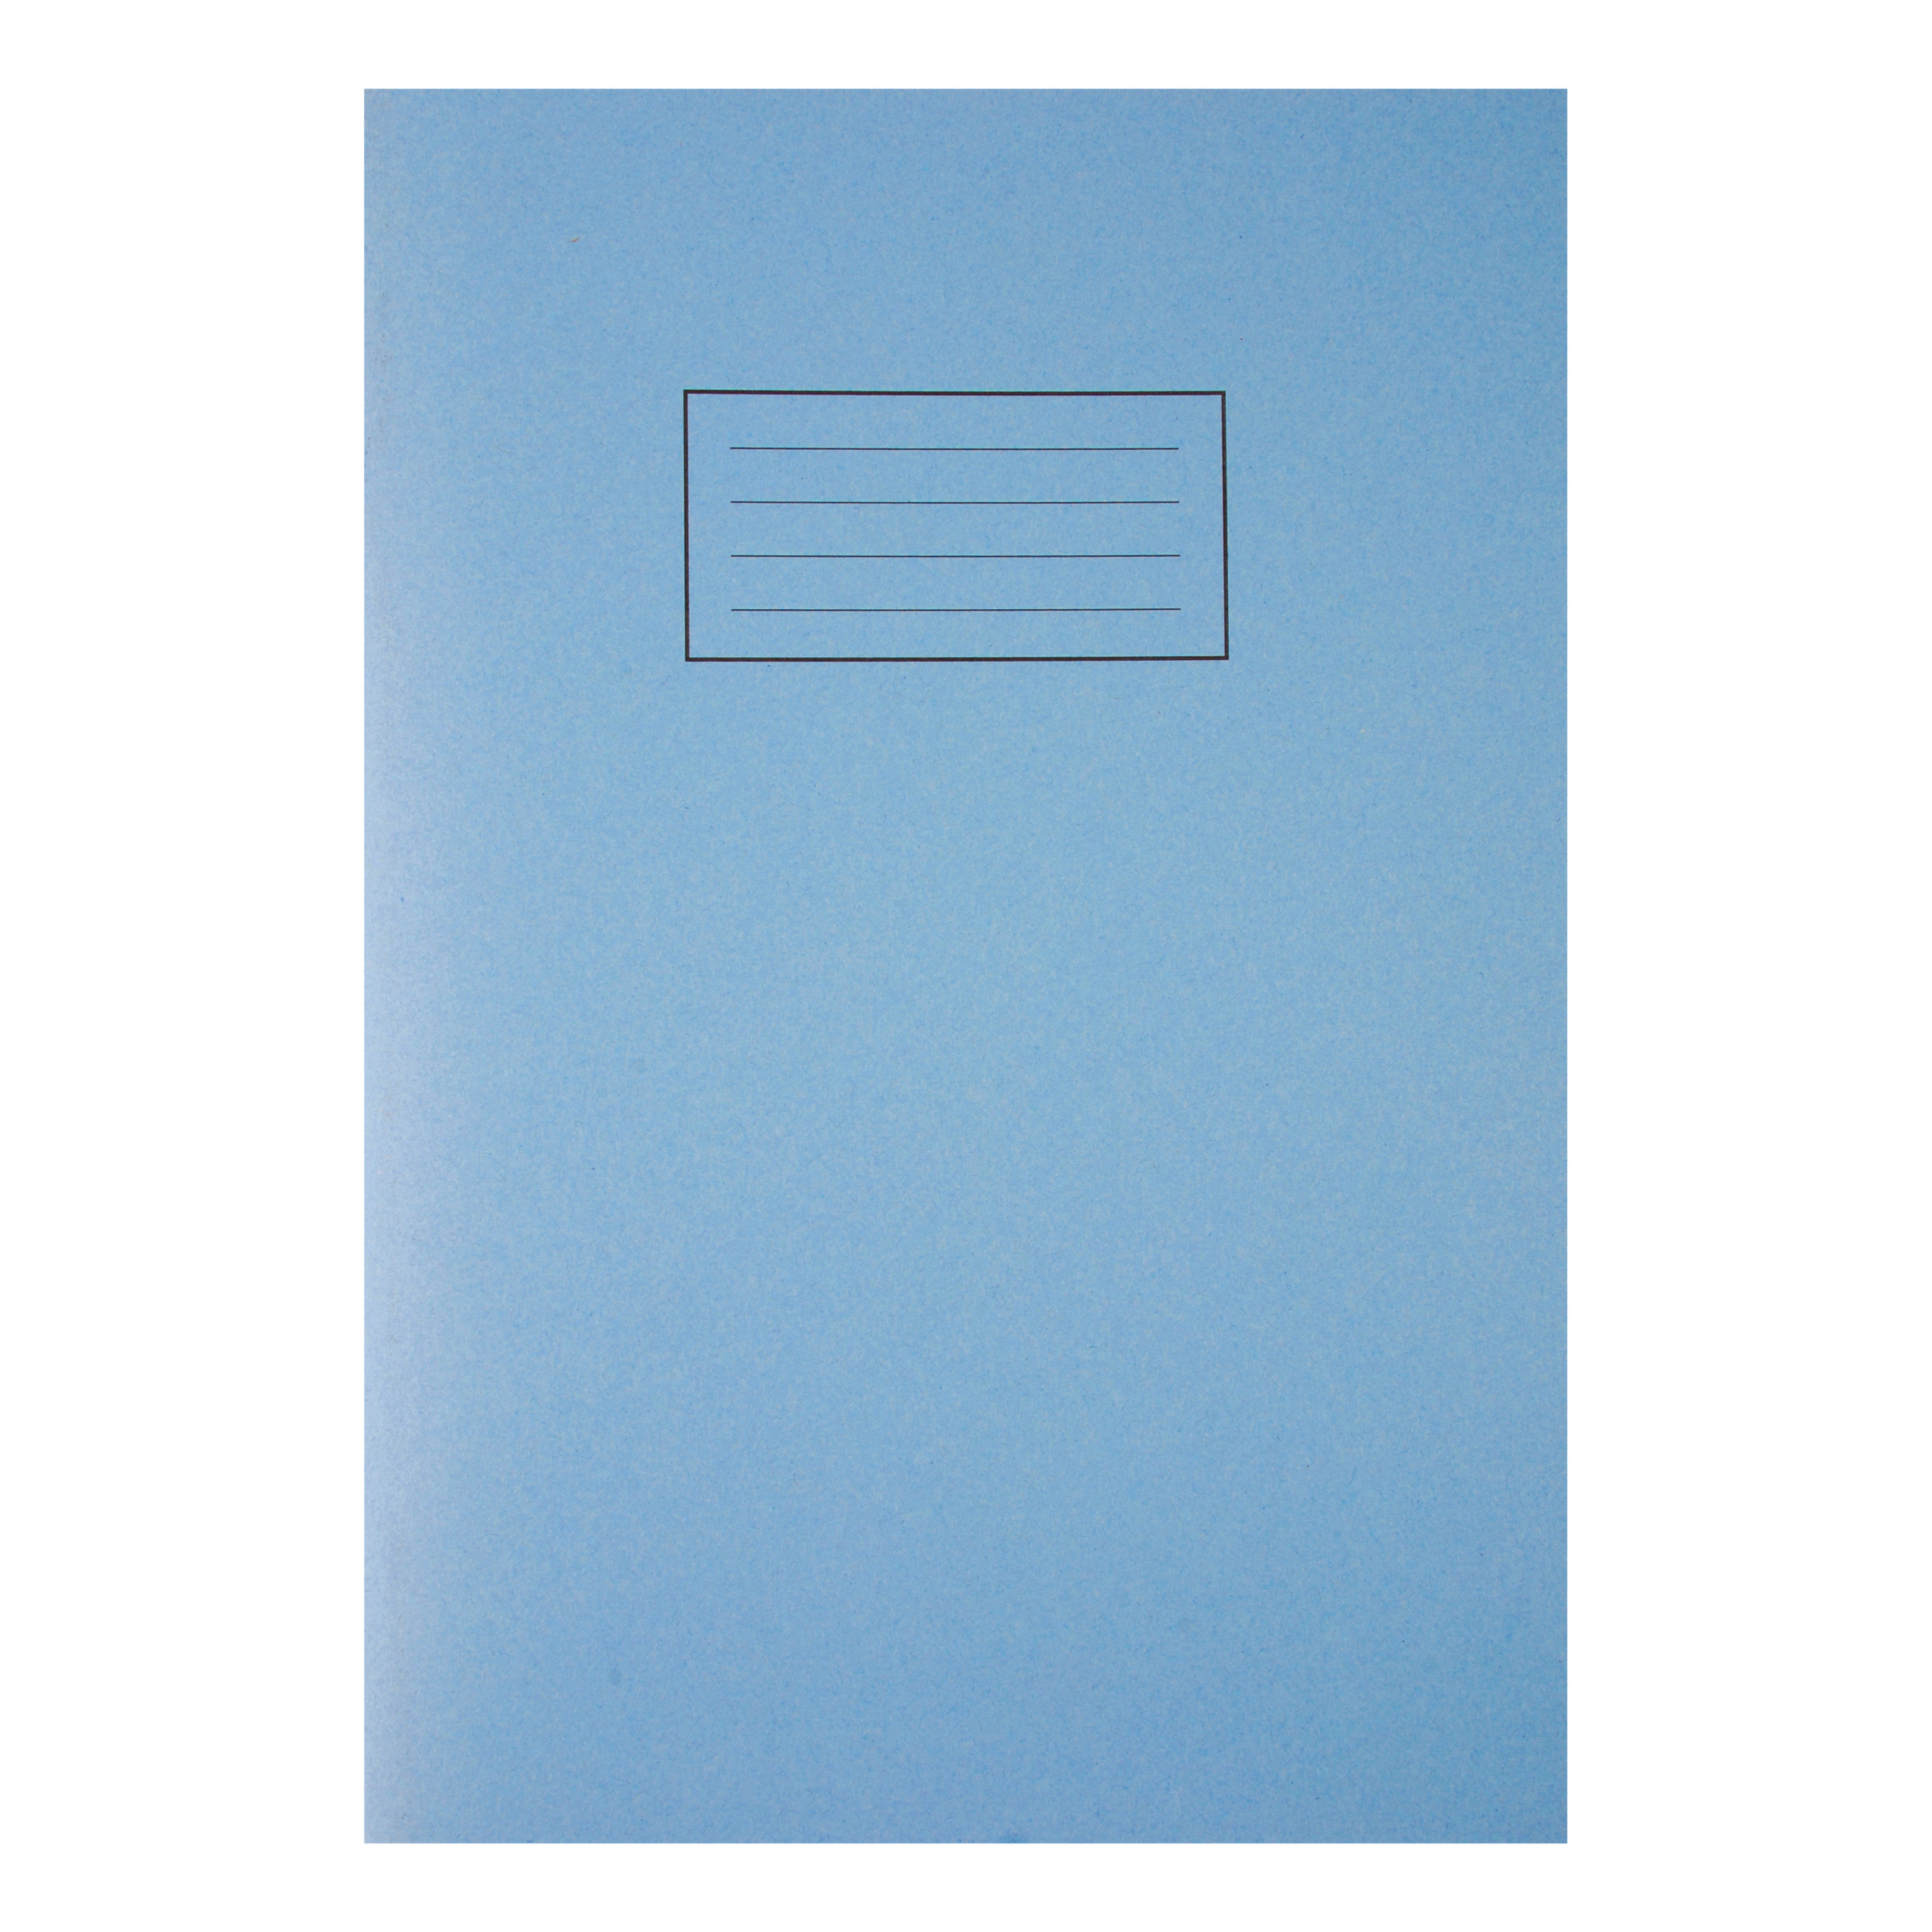 Silvine Exercise Book Plain 80 Pages 75gsm A4 Blue Ref EX114 Pack 10